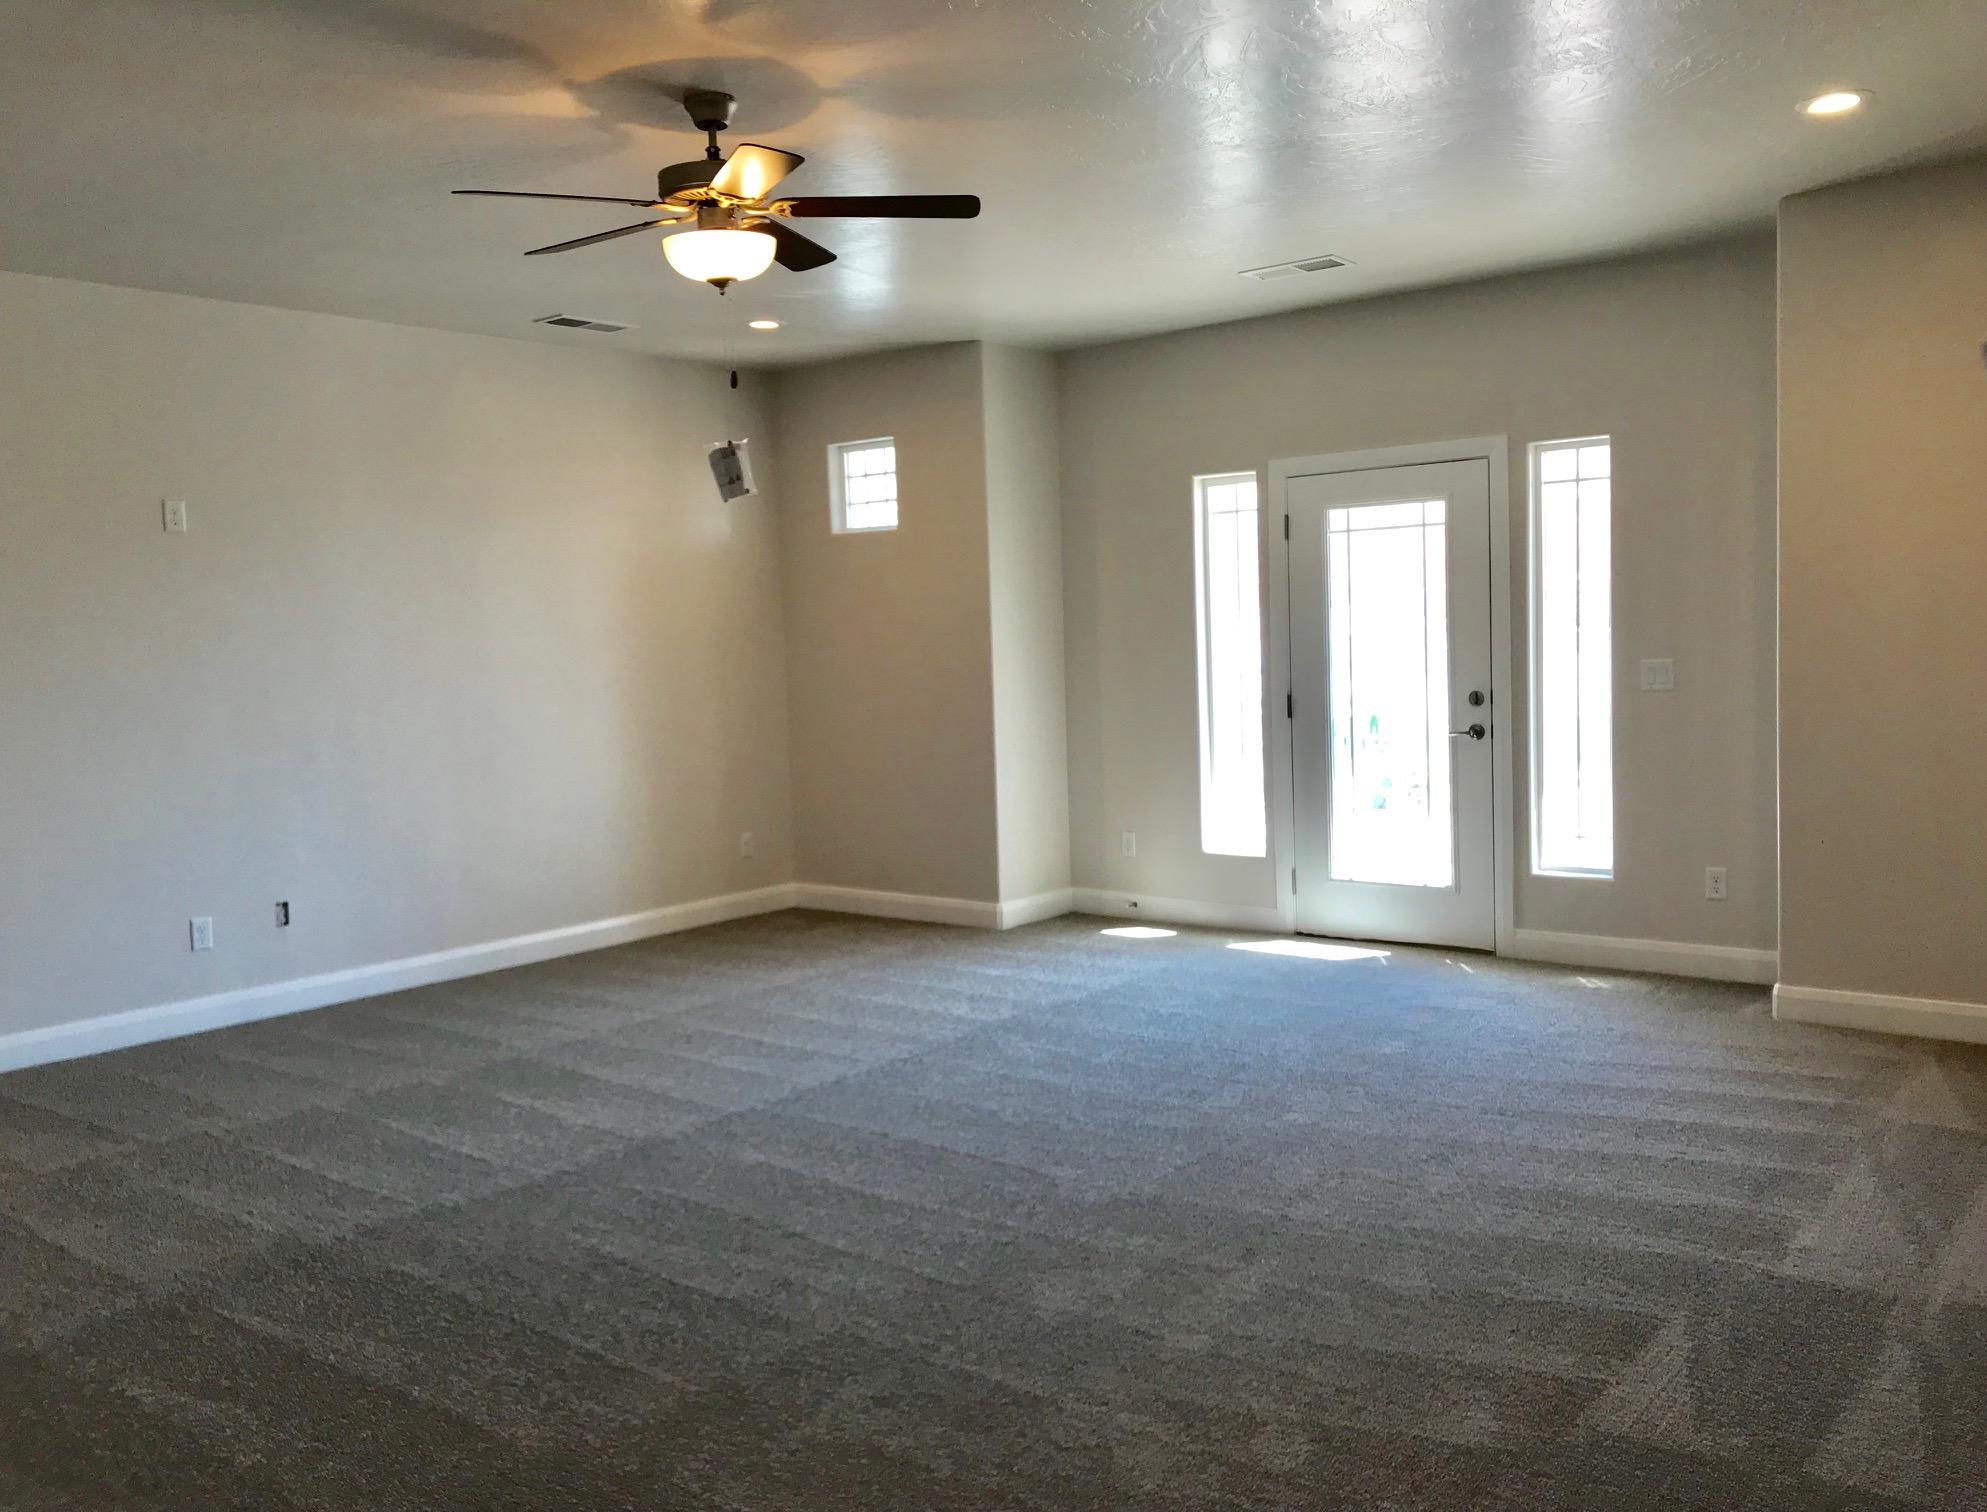 S&S Homes New Construction in Washington Fields at Shooting Star! Check out this 6br 4.5ba home on .27 acre lot with no homes behind and Shooting Star park across the street. Front and back yard landscaping included. You\